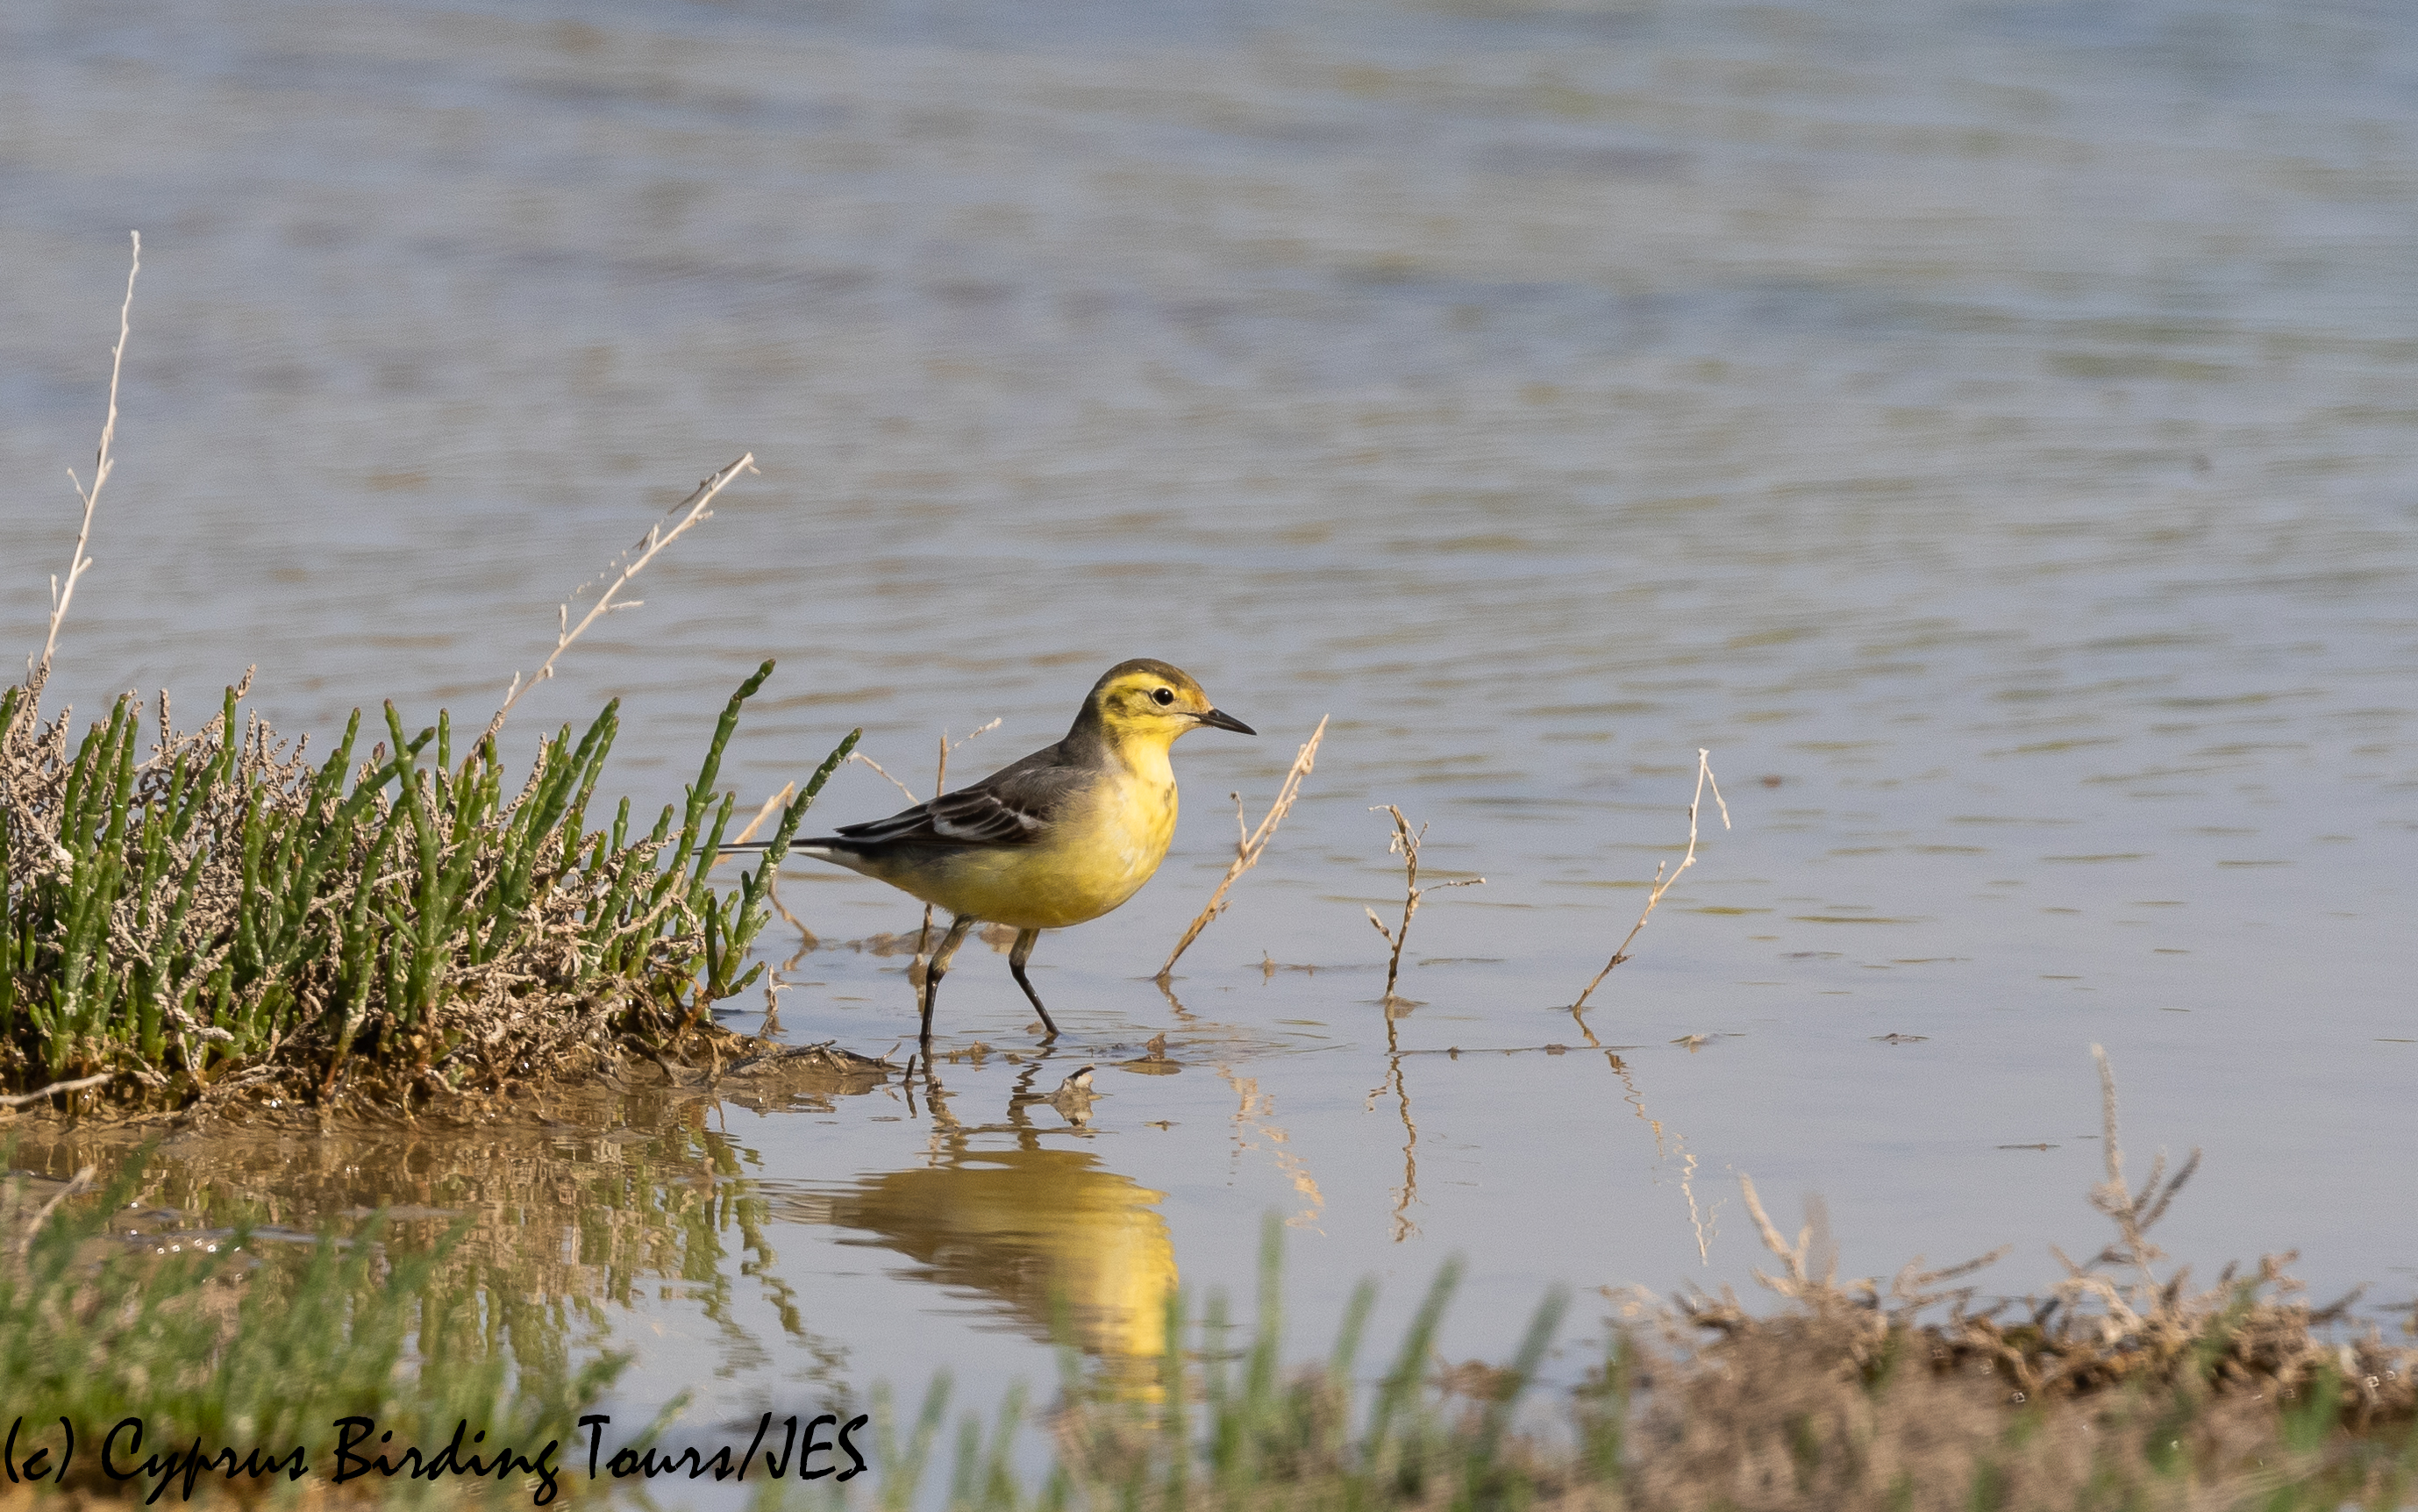 Female Citrine Wagtail, Petounta 24th March 2020 (c) Cyprus Birding Tours